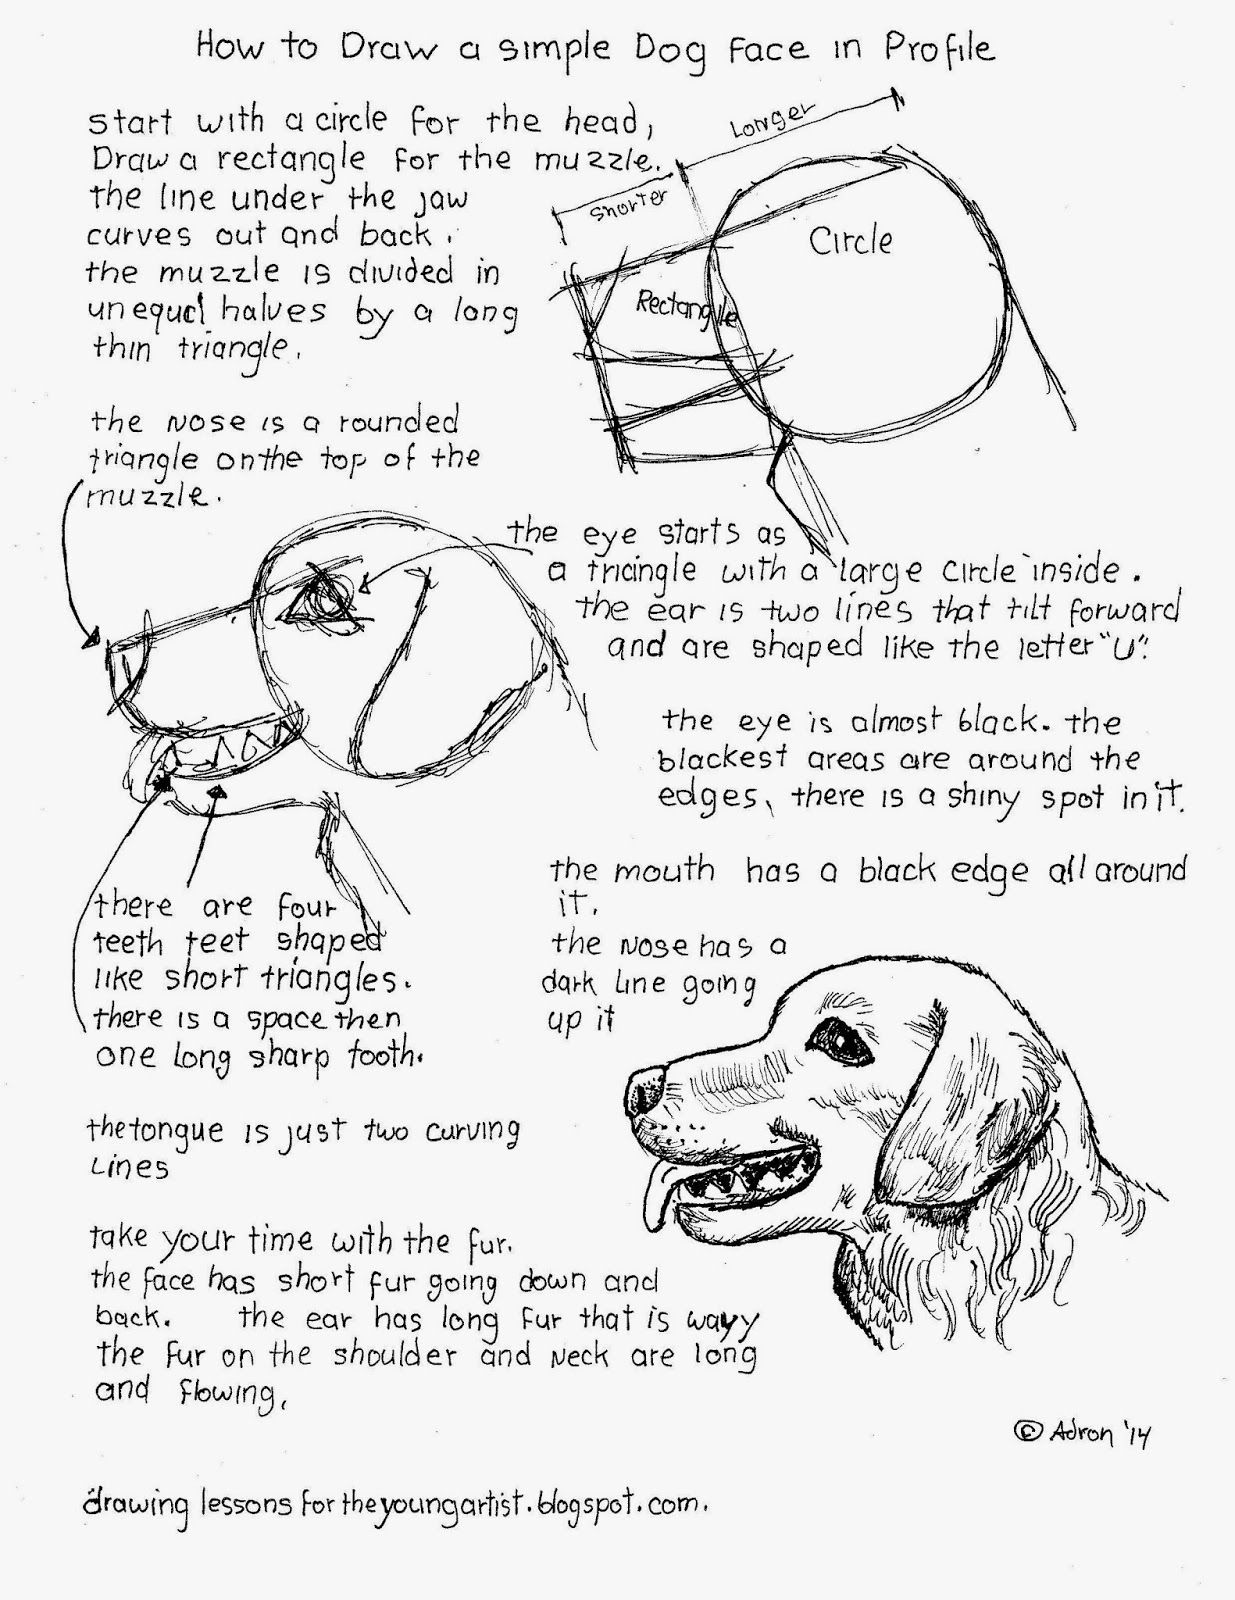 How to draw a simple dog face in profile how to draw worksheets how to draw a simple dog face in profile ccuart Choice Image